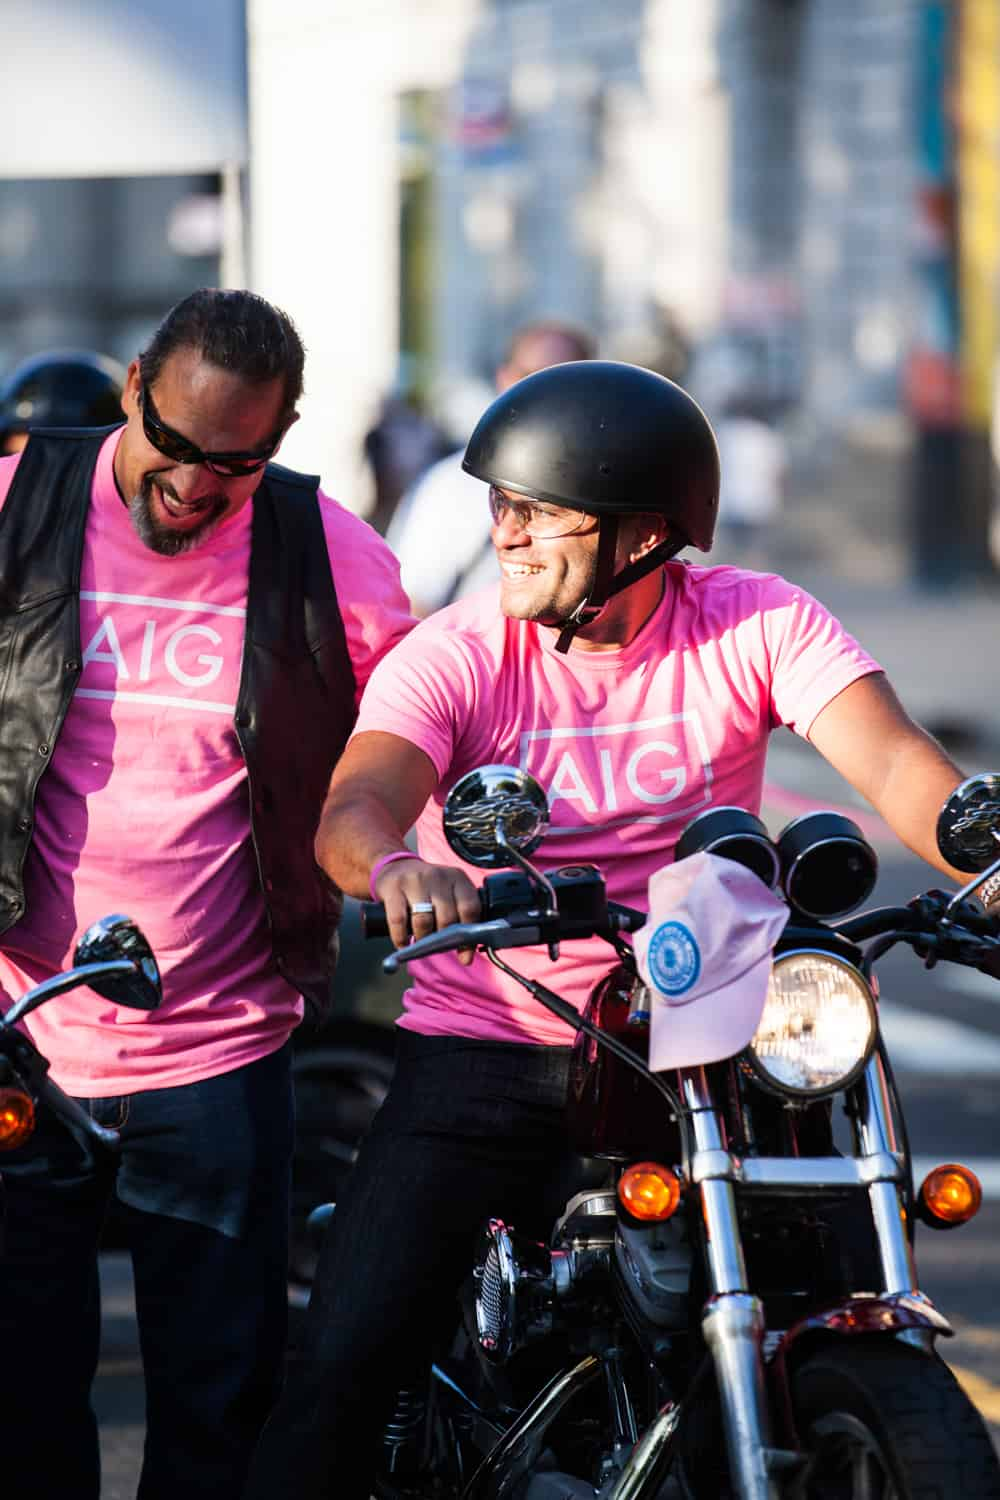 NYC Race for the Cure photos of man on motorcycle with helmet laughing with another anotherman